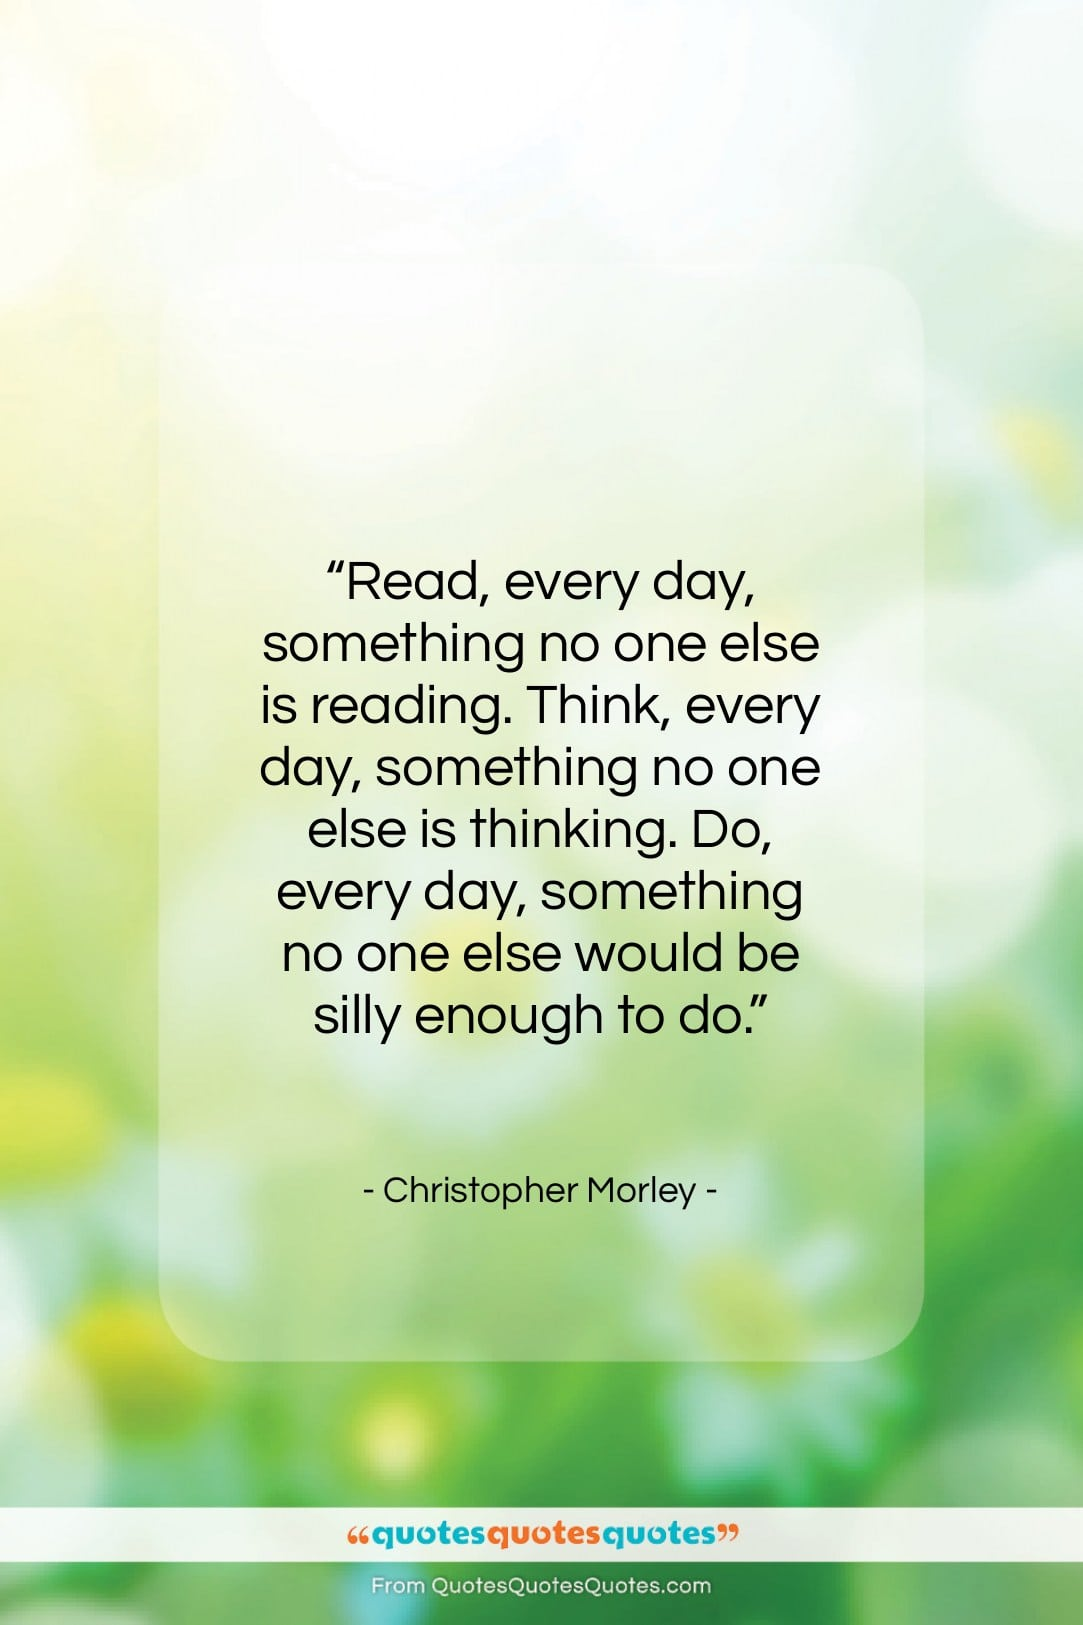 """Christopher Morley quote: """"Read, every day, something no one else…""""- at QuotesQuotesQuotes.com"""